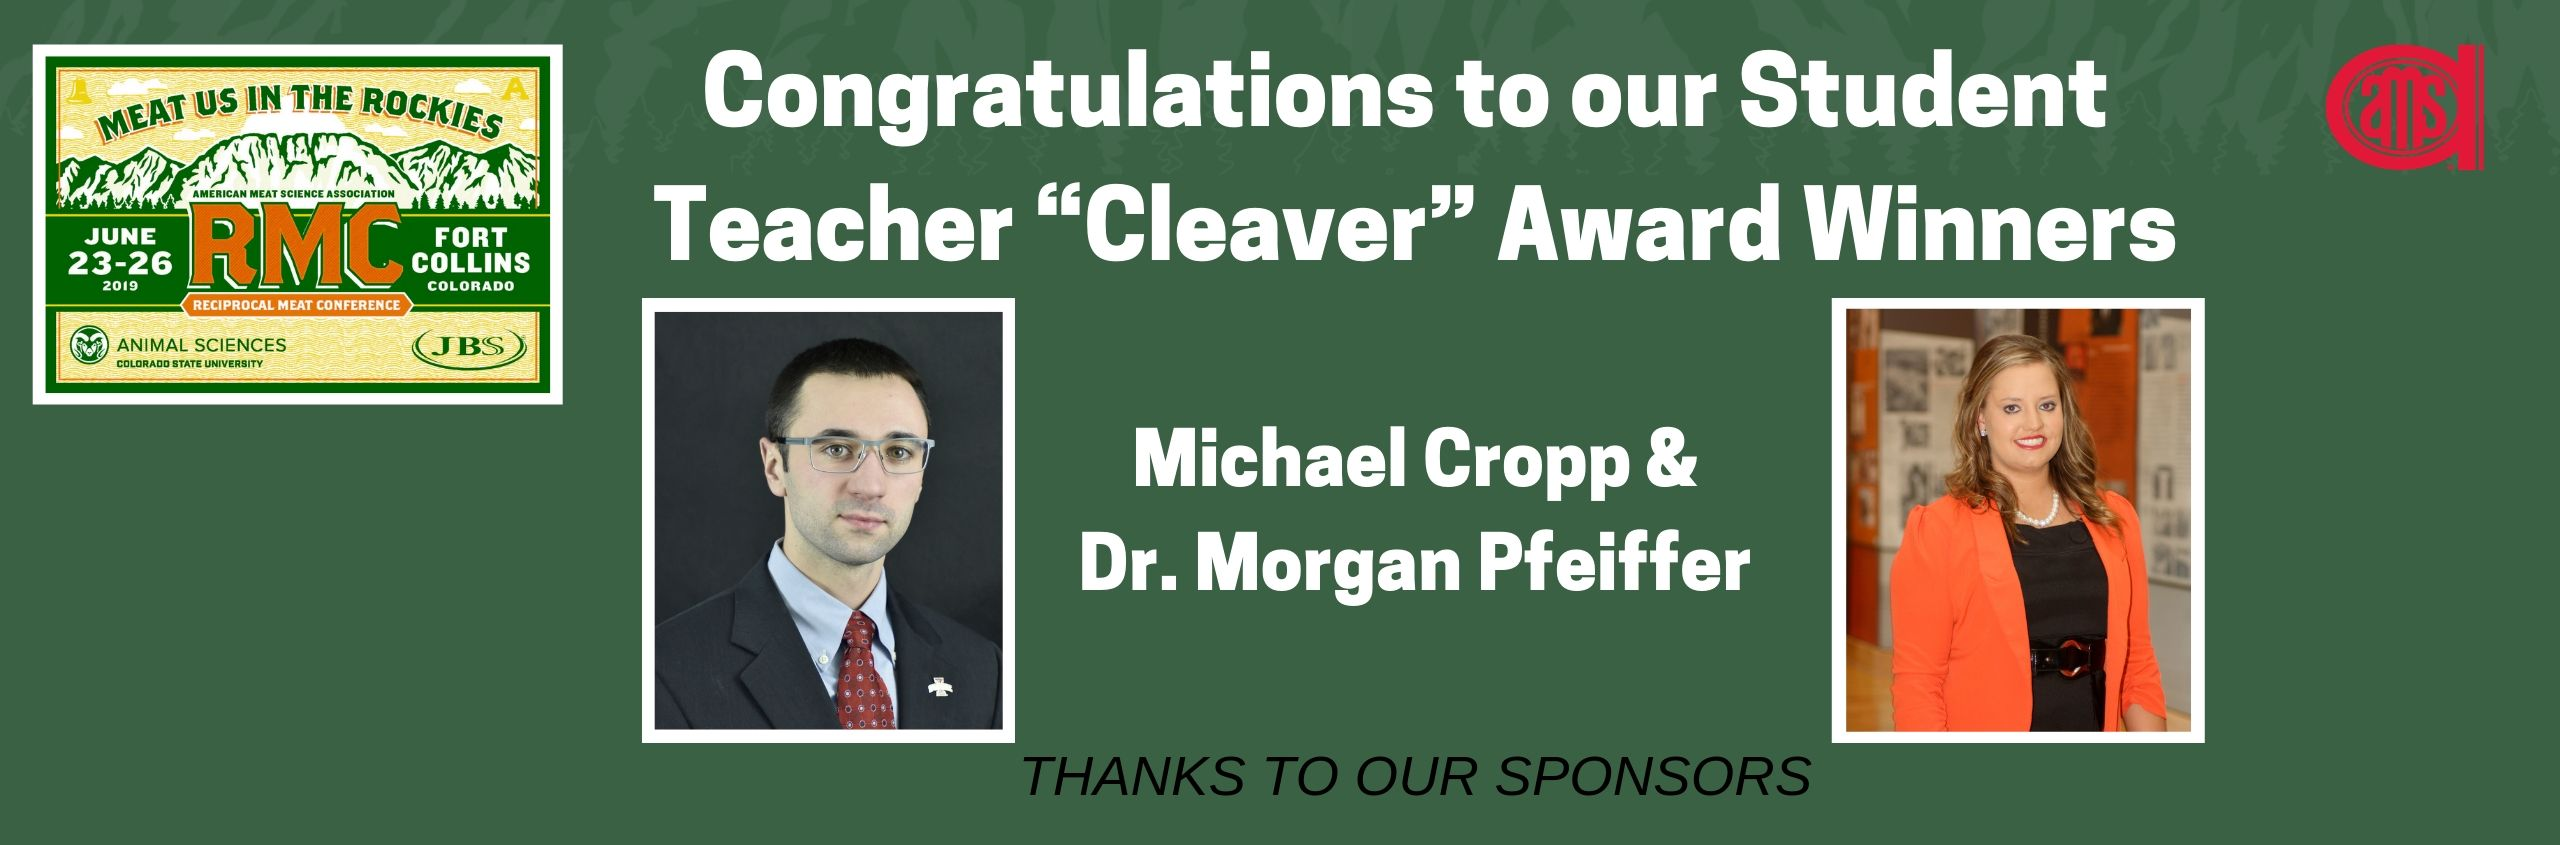 Cleaver Award Winners